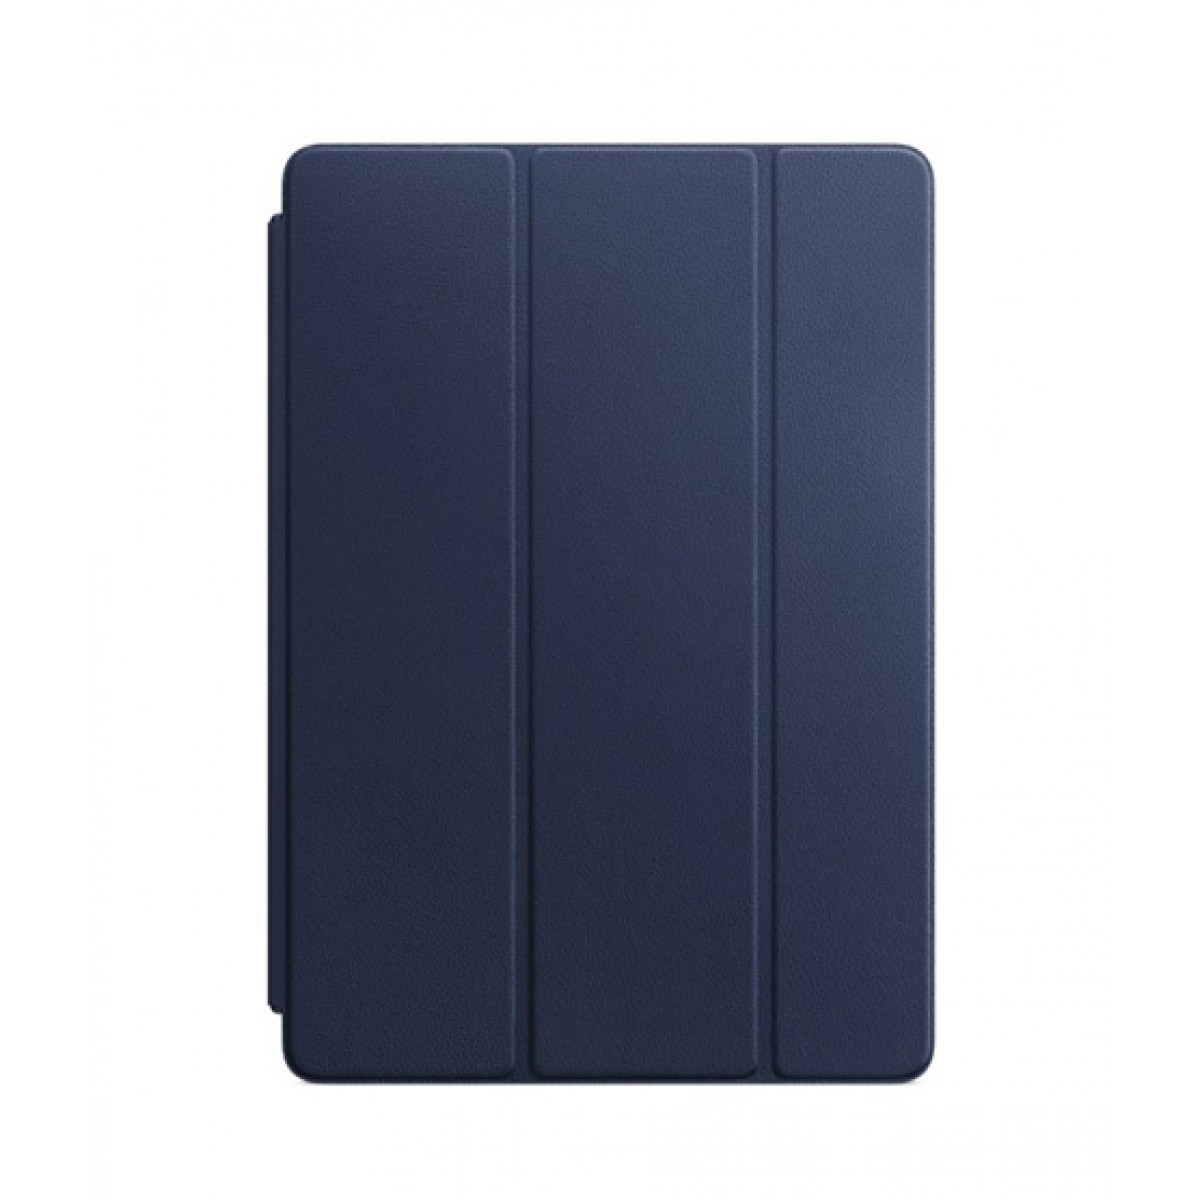 Smart Cover Reviews >> Reviews For Apple Leather Smart Cover For Ipad Pro 12 9